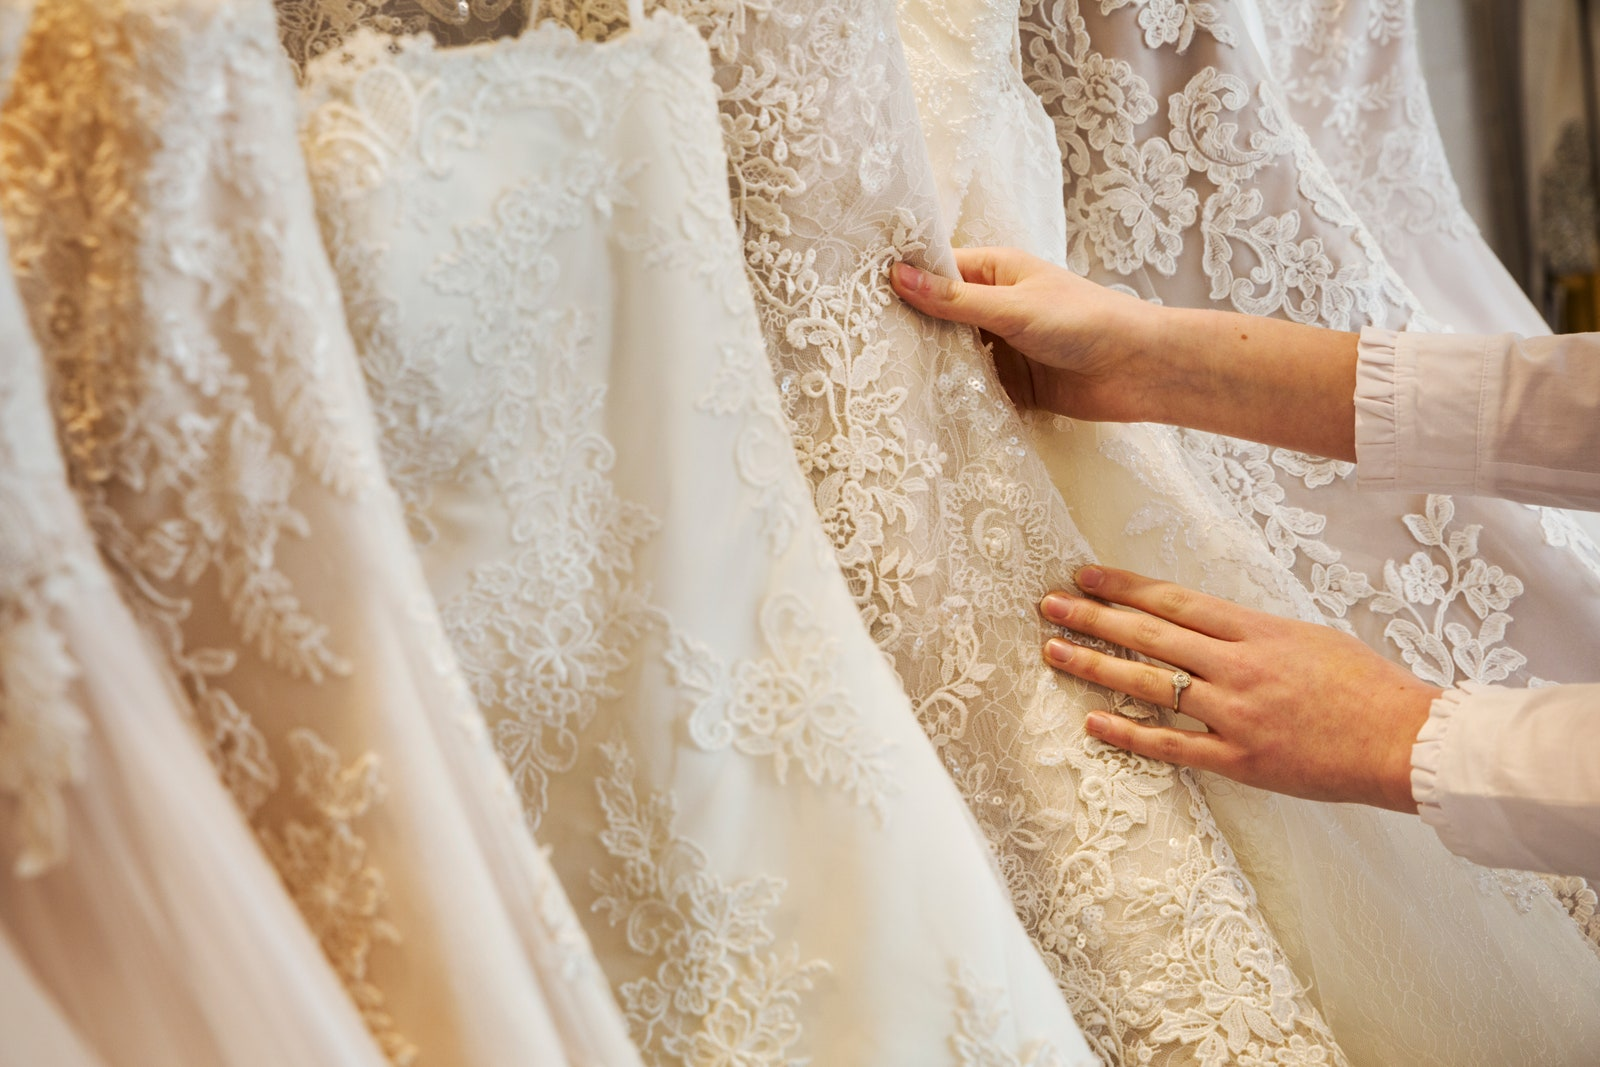 When To Buy A Wedding Dress: The Best Time To Buy1